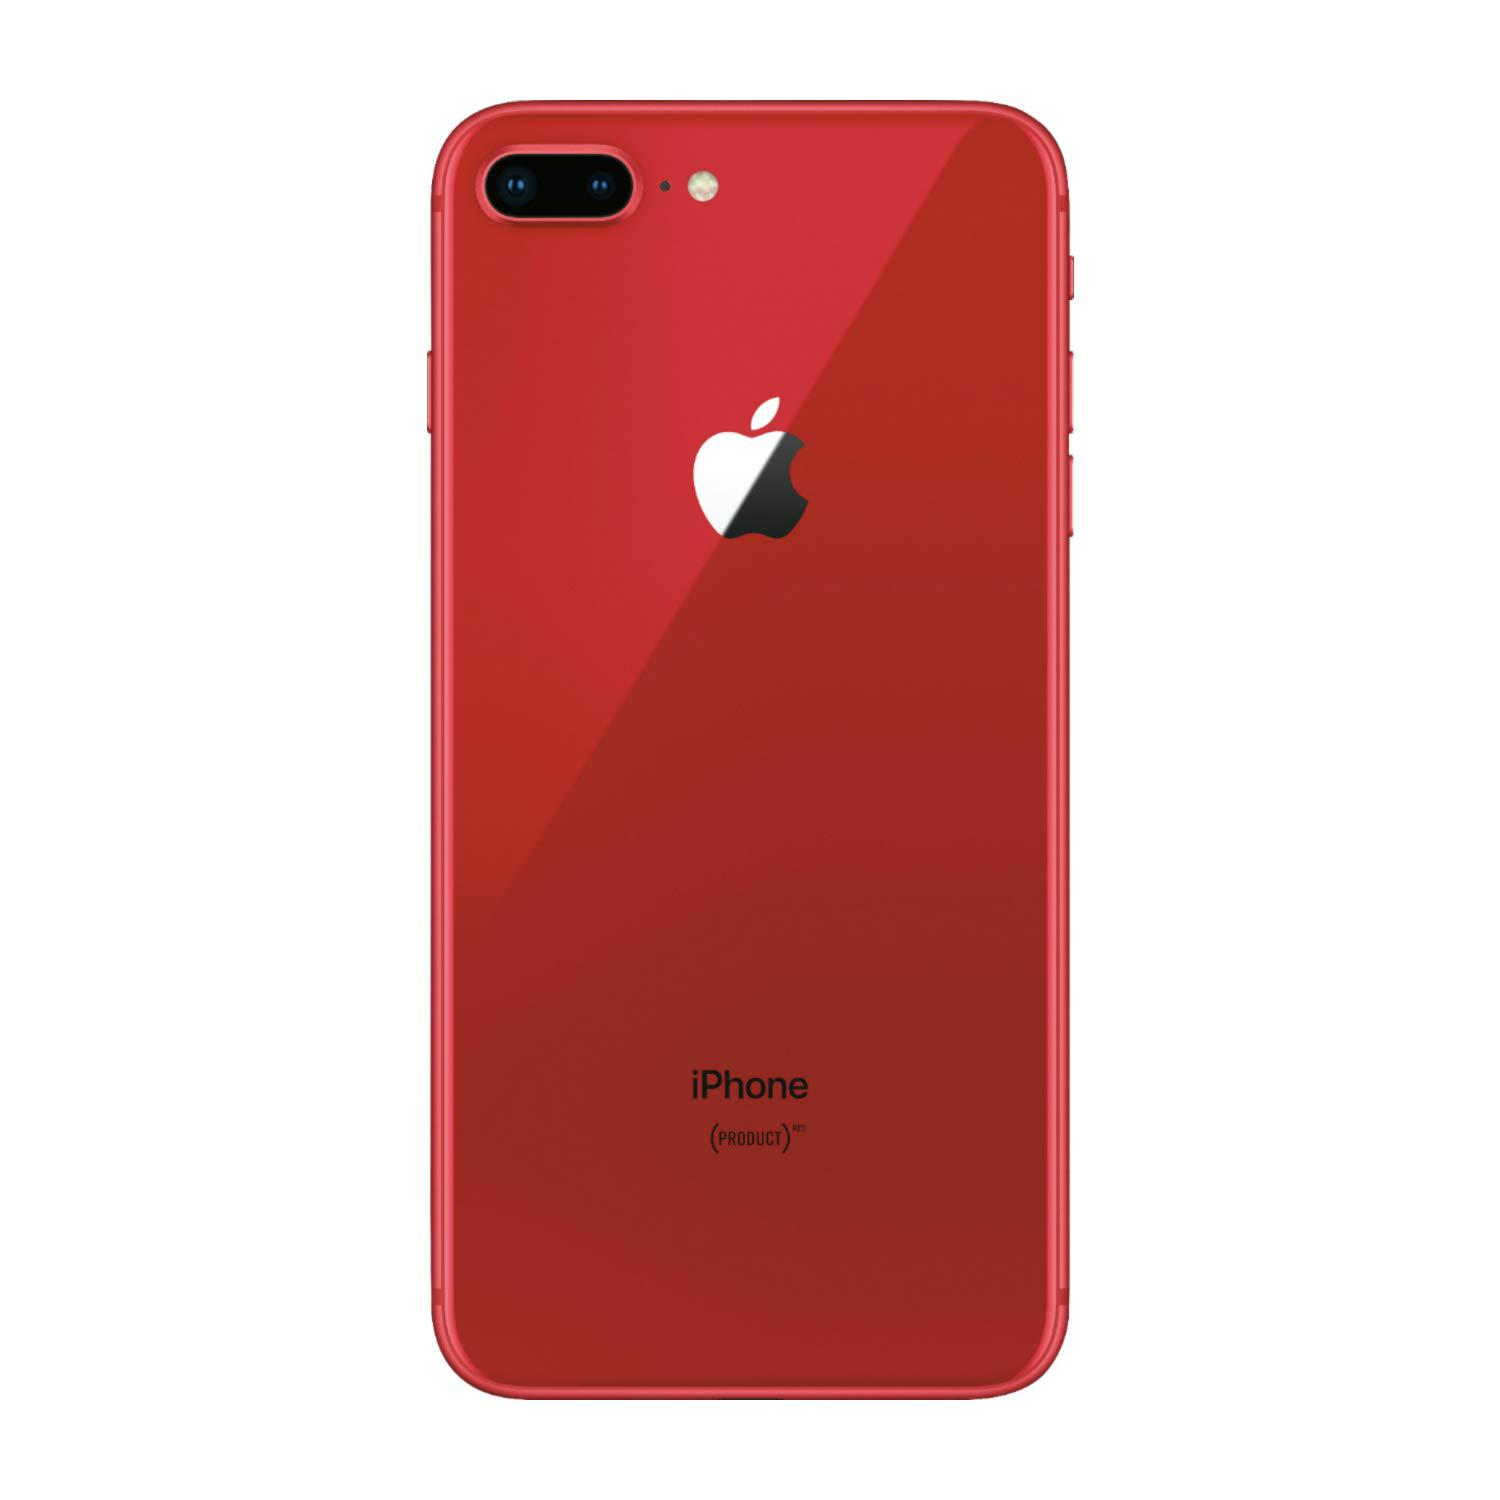 Refurbished iPhone 8 Plus 64GB - Red Unlocked | Back Market